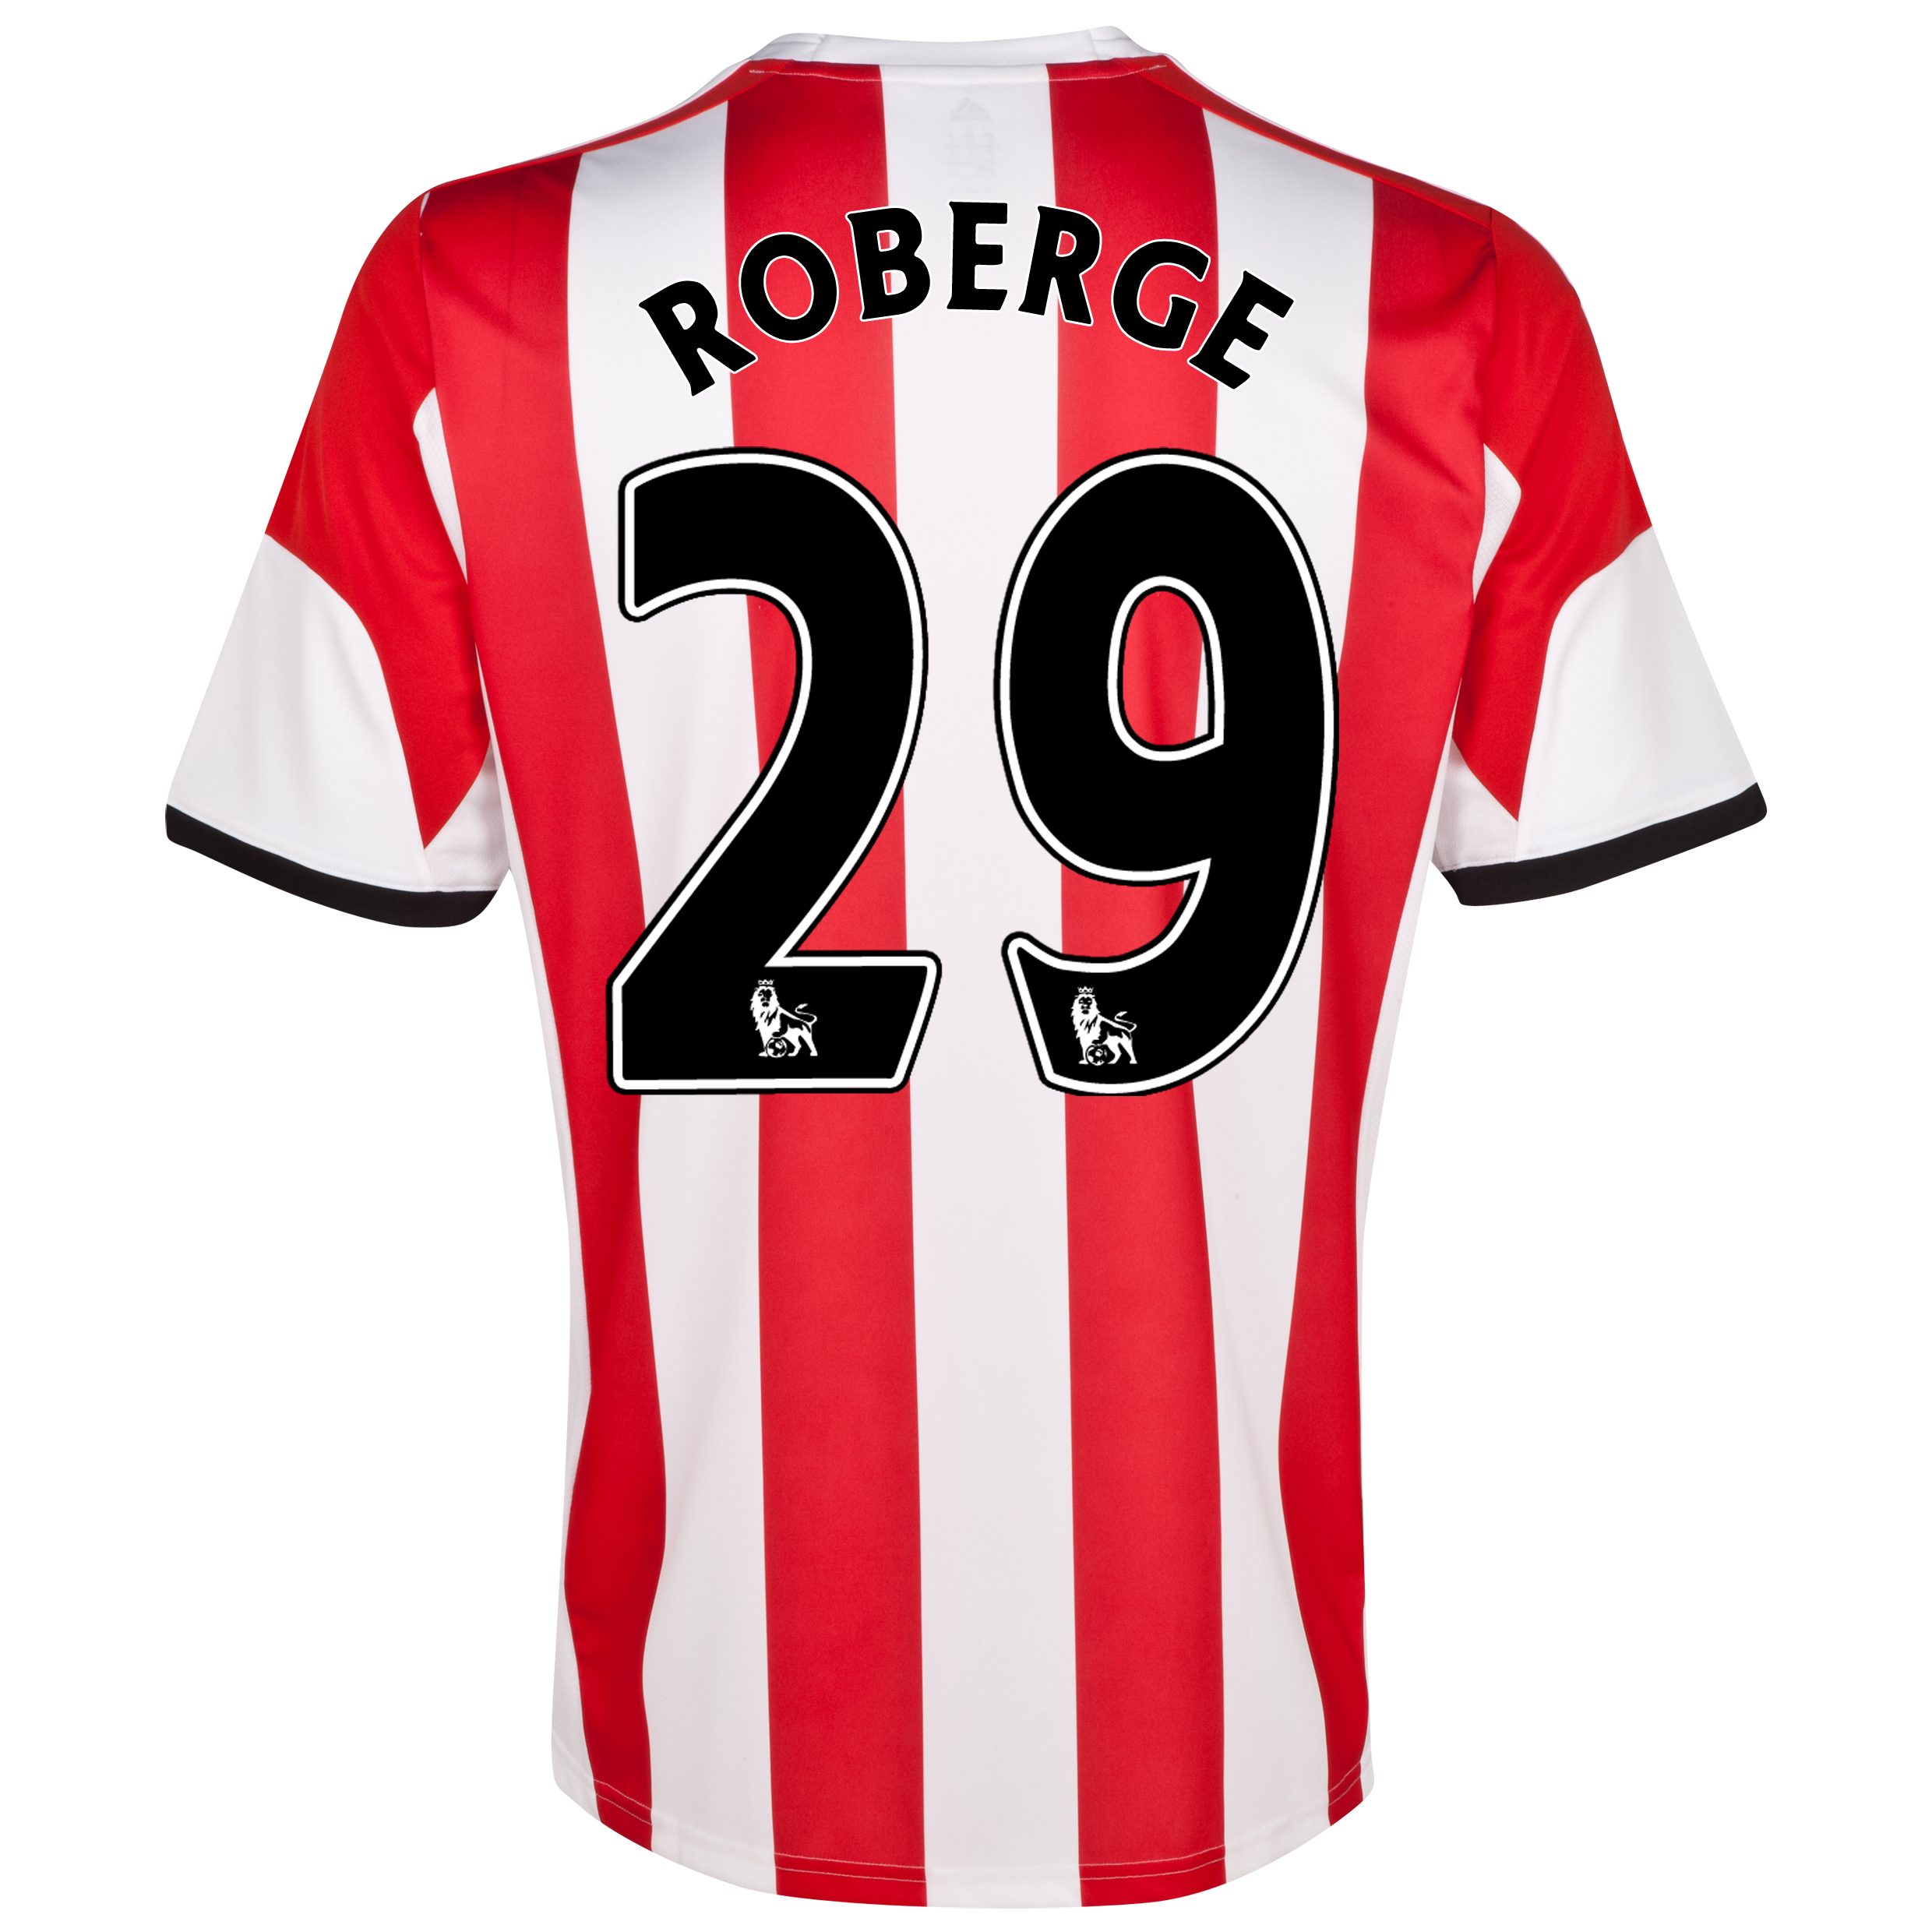 Sunderland Home Shirt 2013/14 - Junior with Roberge 29 printing